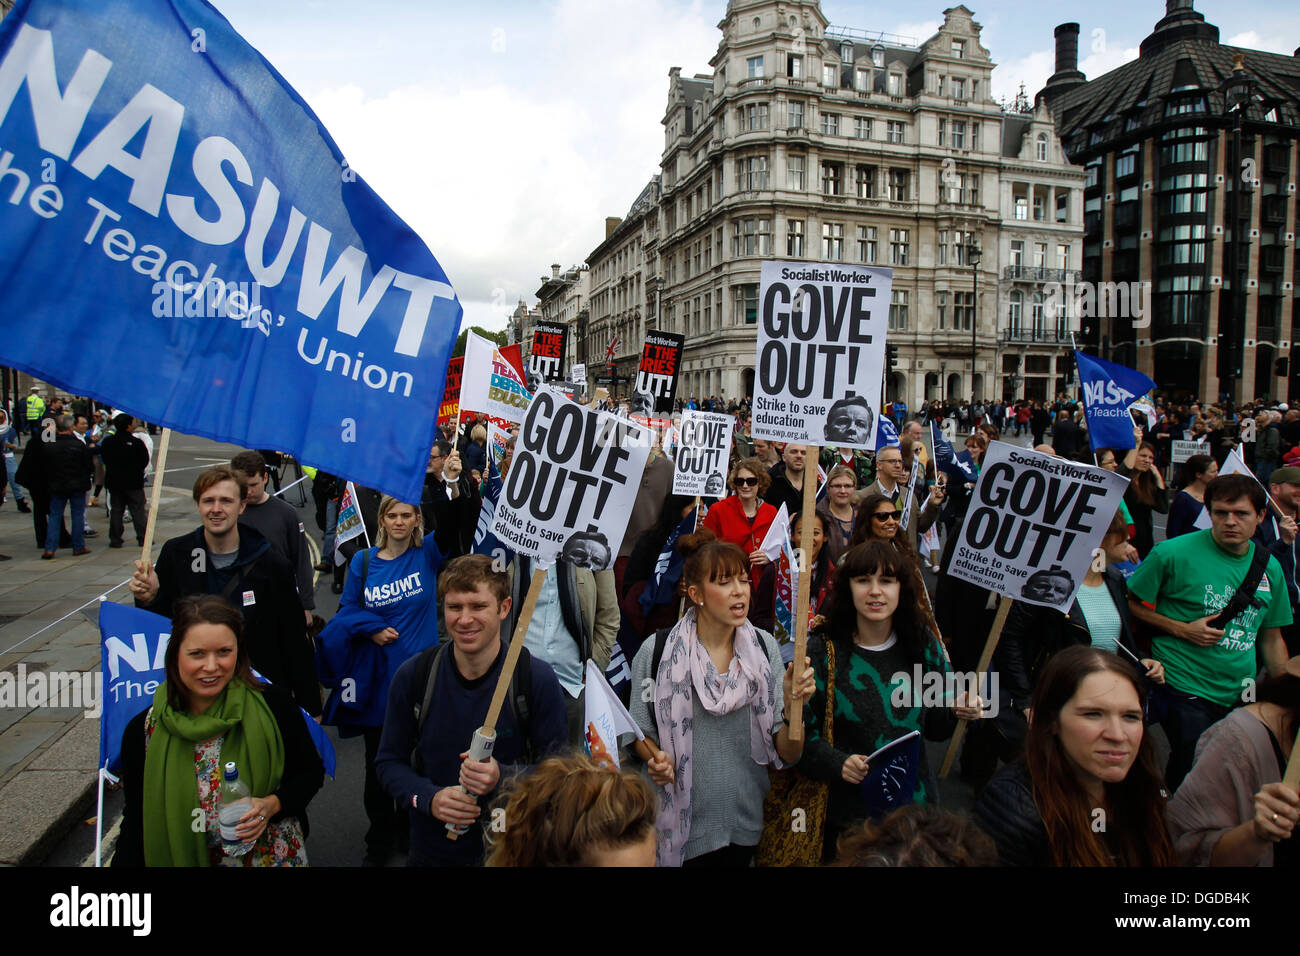 Teachers rally in central London Britain 17 October 2013. - Stock Image